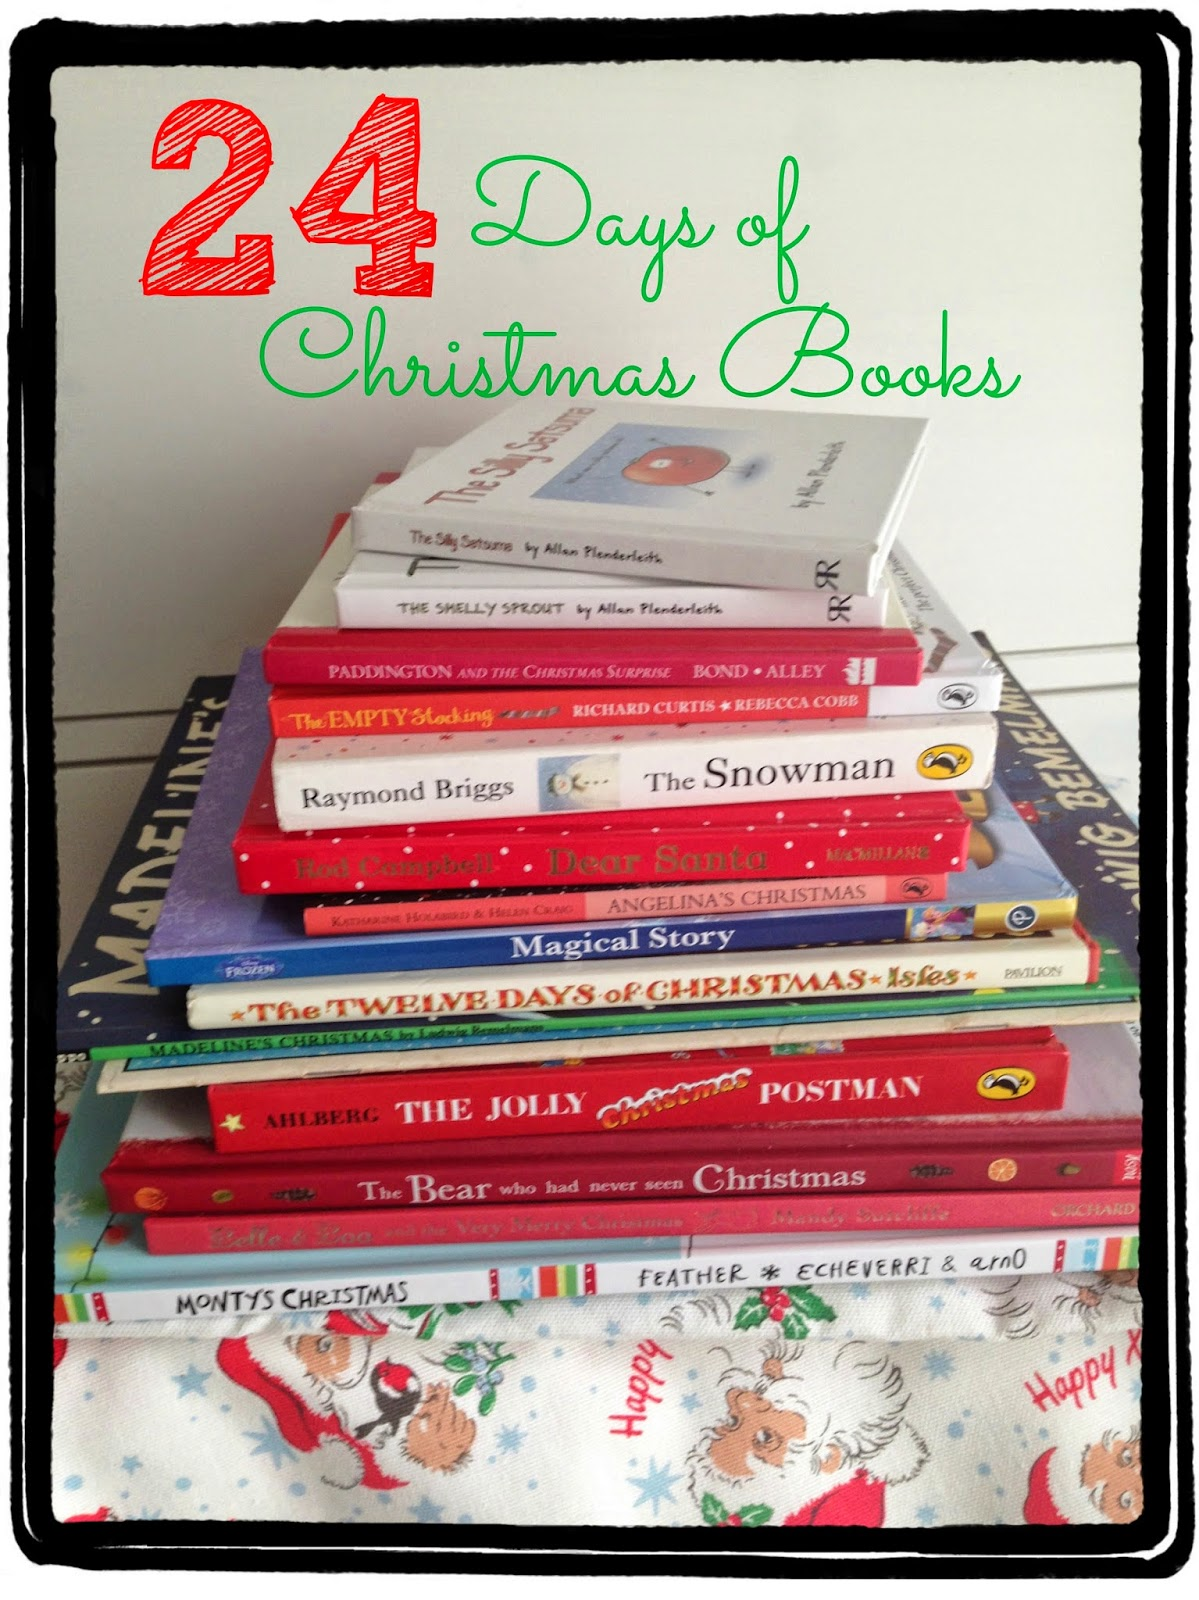 Our NEW family Christmas traditions (part 2) - 24 Days of Christmas tales! | chritsmas books for kids | christmas books | christmas stories | 24 books of christmas | book event | christmas traditions | xmas themed books | books | sunday night book club | gift ideas | kids christmas | books | classic christmas books | mamasVIb